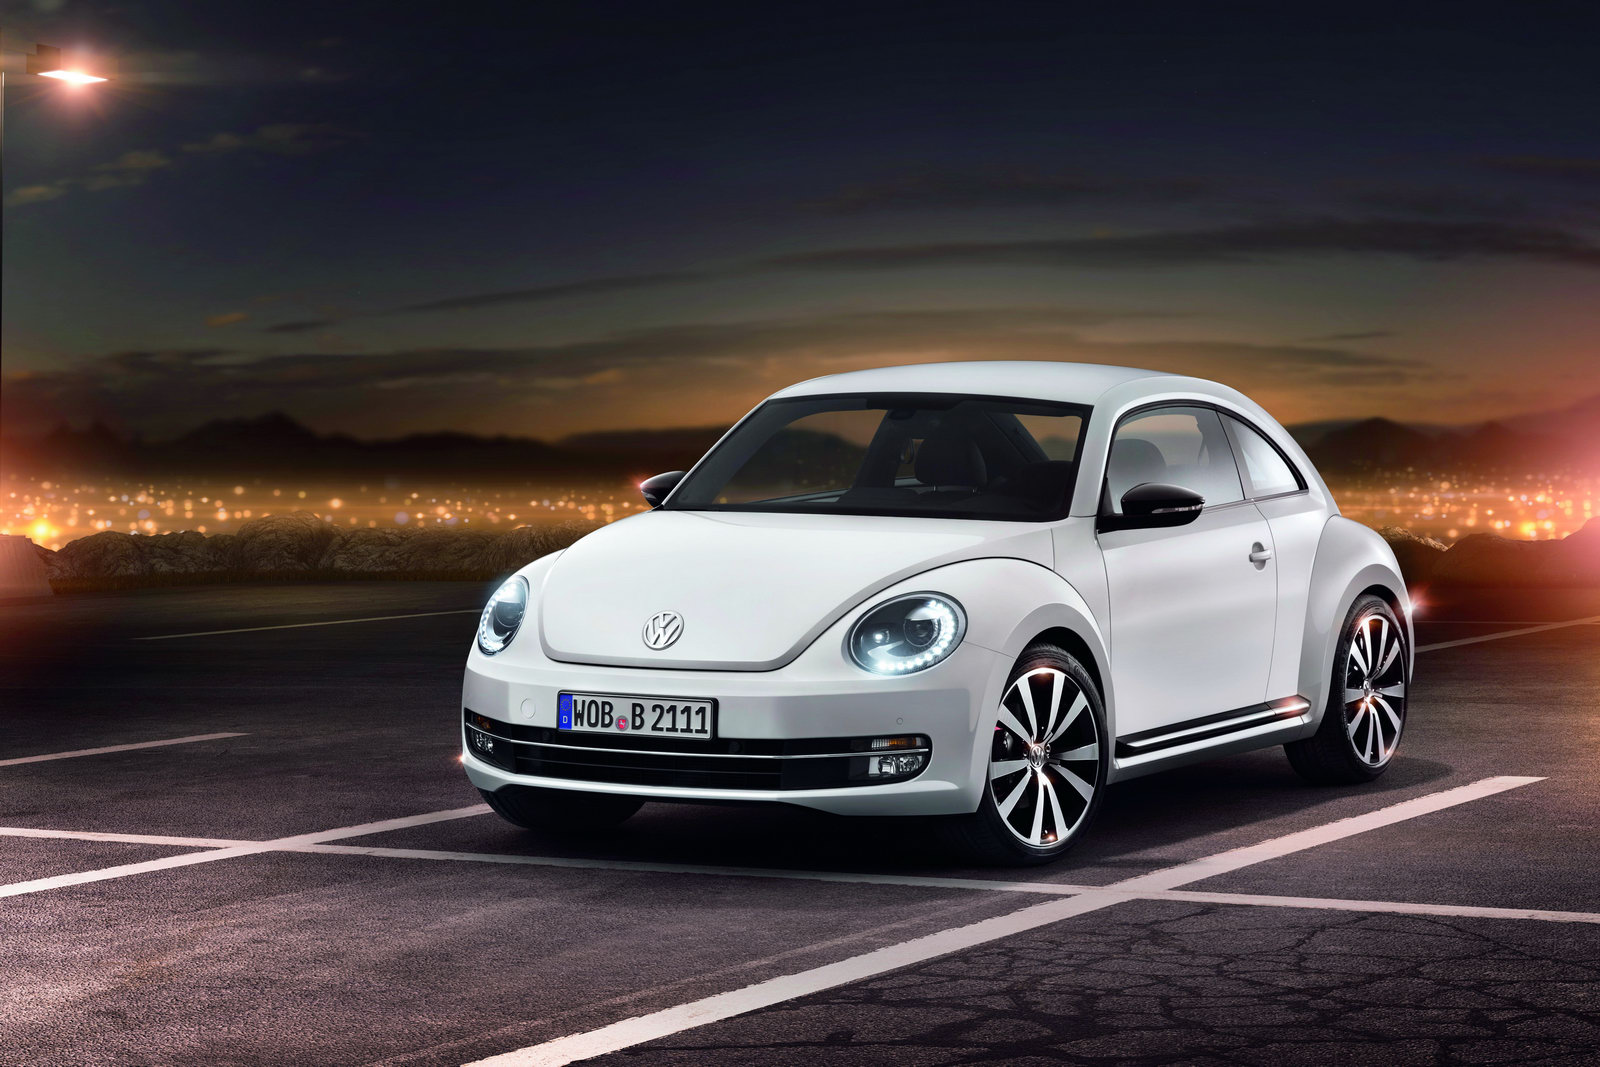 The Beetle features a glossy